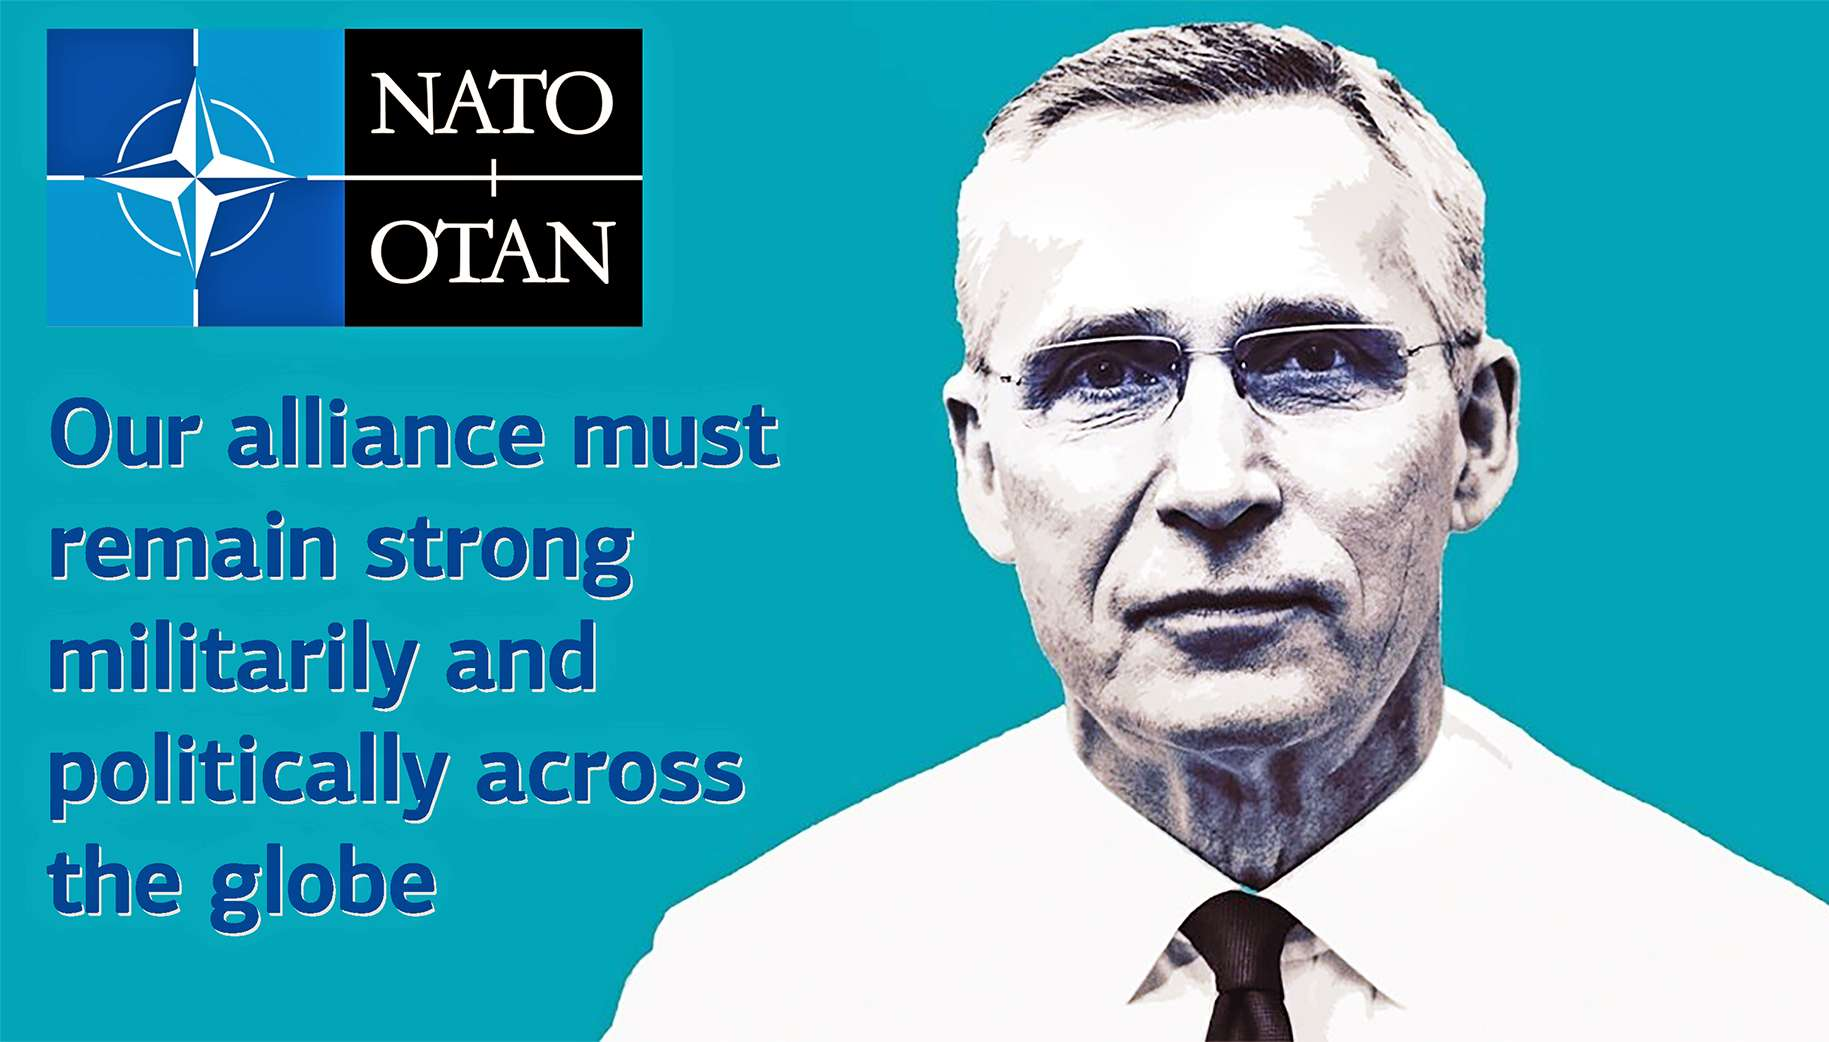 Jens Stoltenberg the secretary general of NATO Our alliance must remain strong militarily and politically across the globe